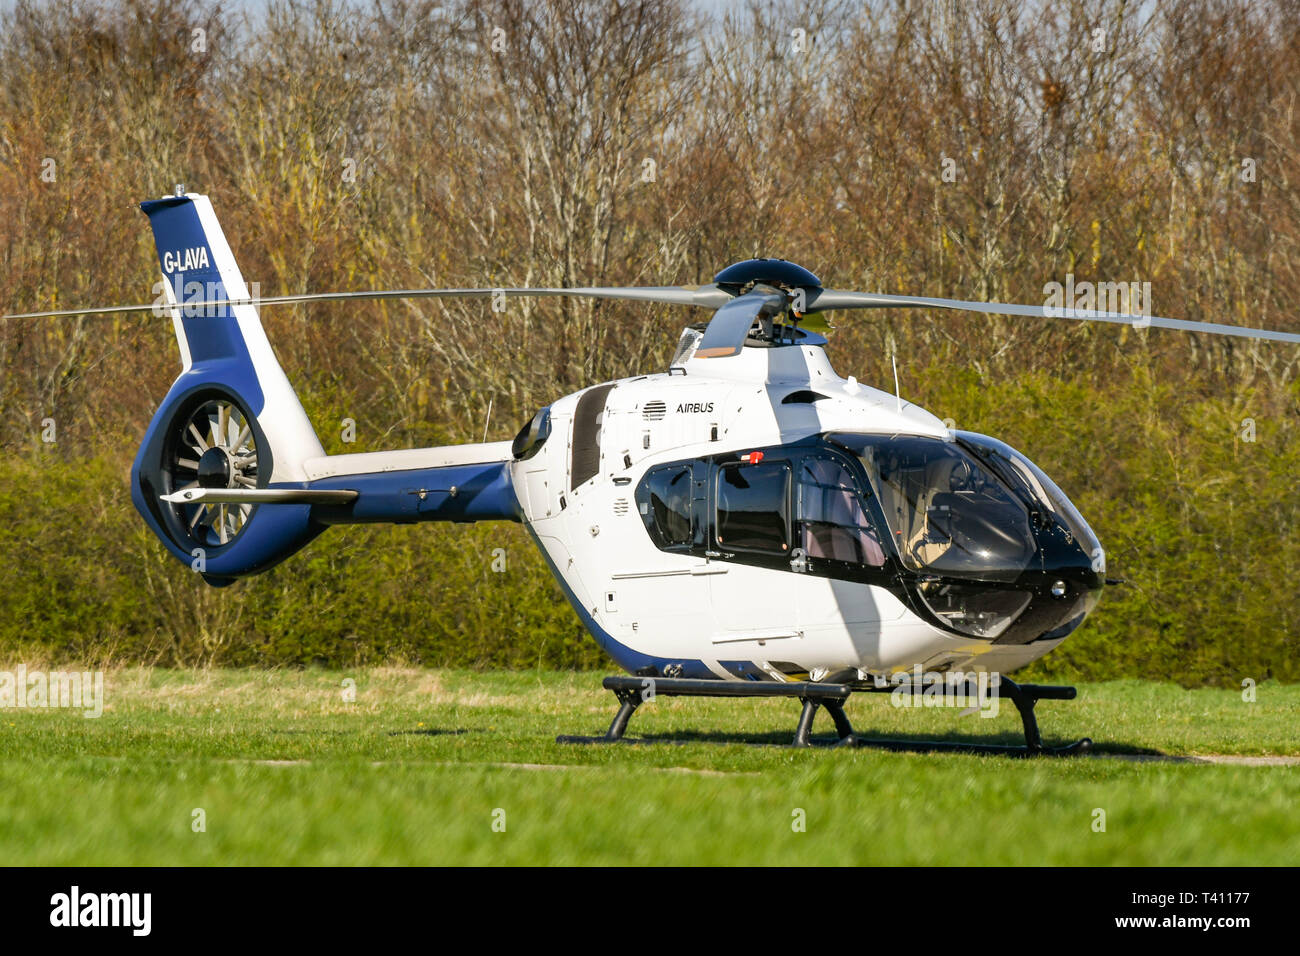 HIGH WYCOMBE, ENGLAND - MARCH 2019: Airbus Helicopters H135 helicopter on the ground at Wycombe Air Park. - Stock Image